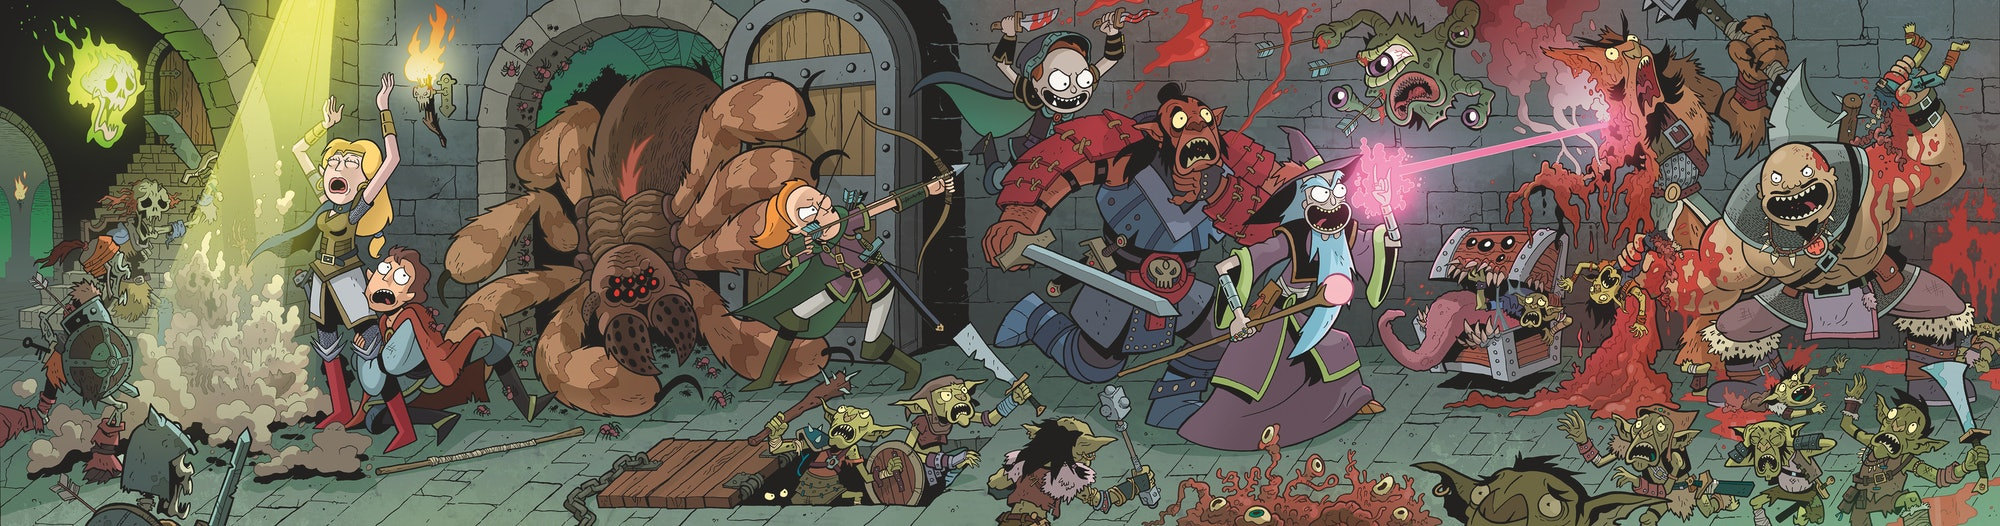 rick and morty D&D meatface